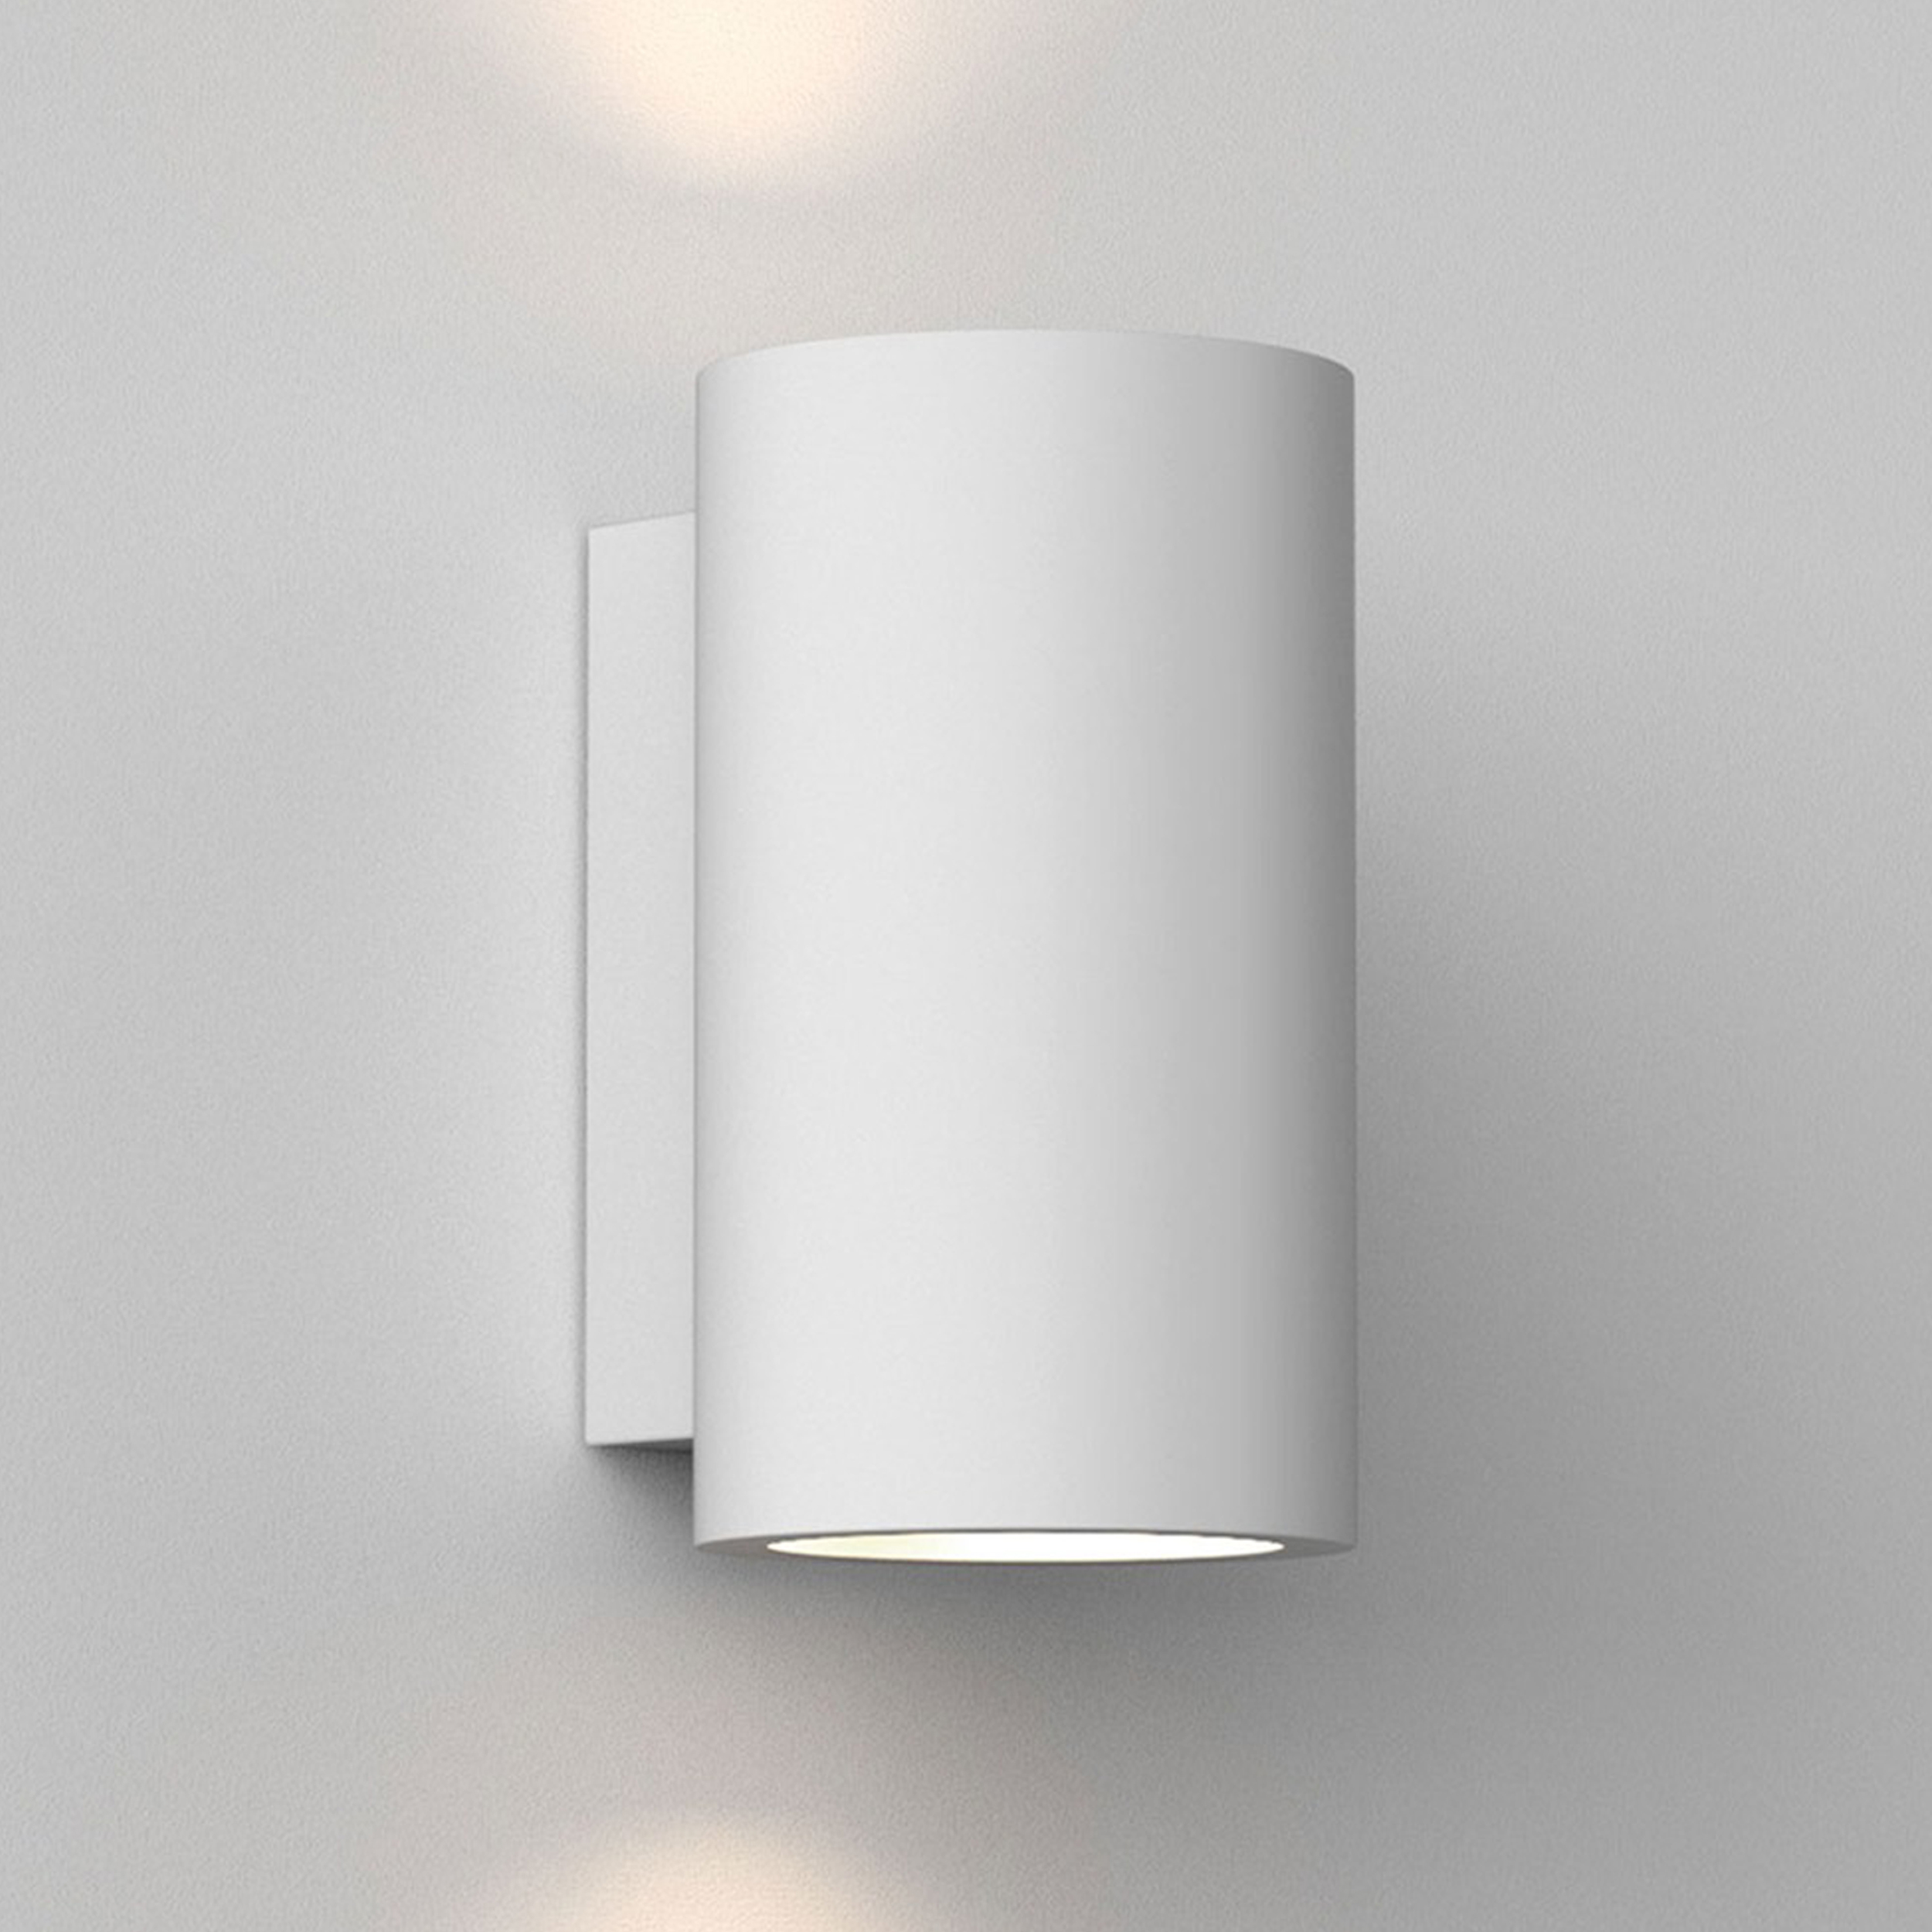 Astro Bologna 160 Led Wall Light White Plaster B